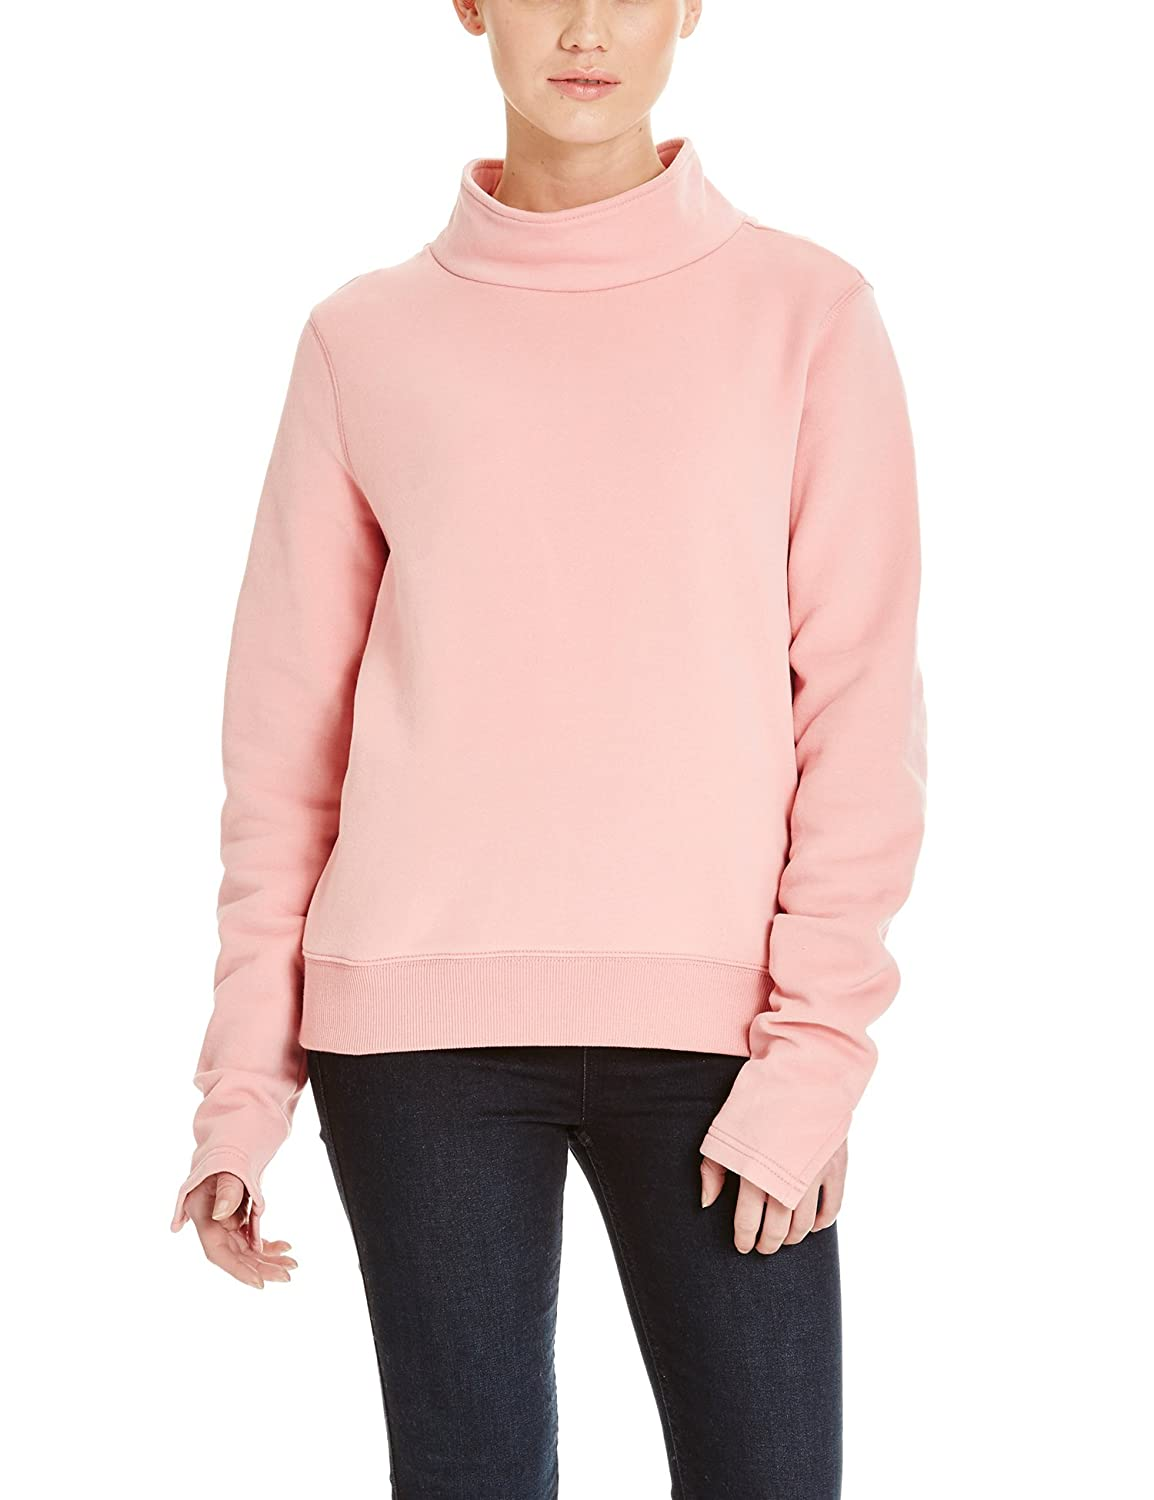 Bench Women's Repay Jumper Bench Limited (Apparel) BLEA3777